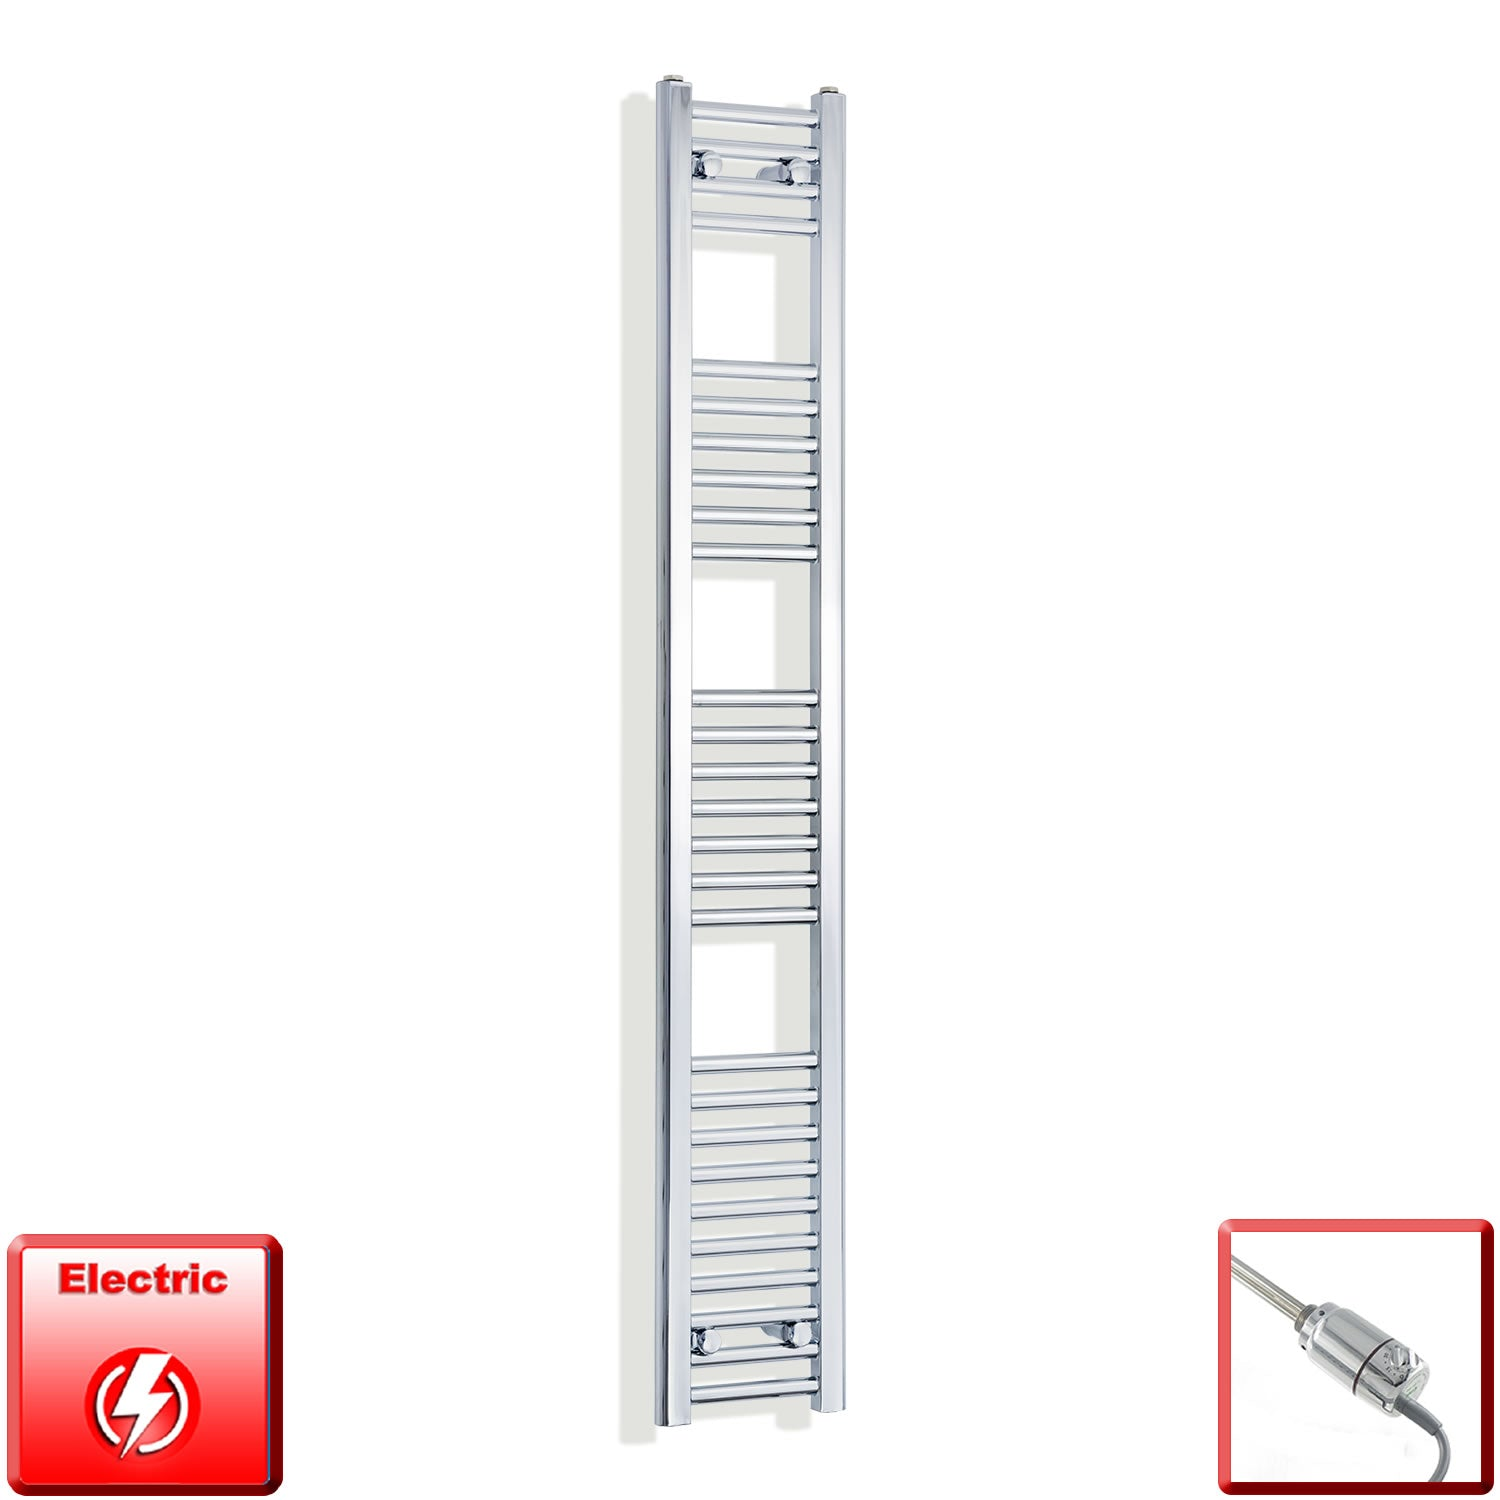 200mm Wide 1600mm High Flat Chrome Pre-Filled Electric Heated Towel Rail Radiator HTR,GT Thermostatic